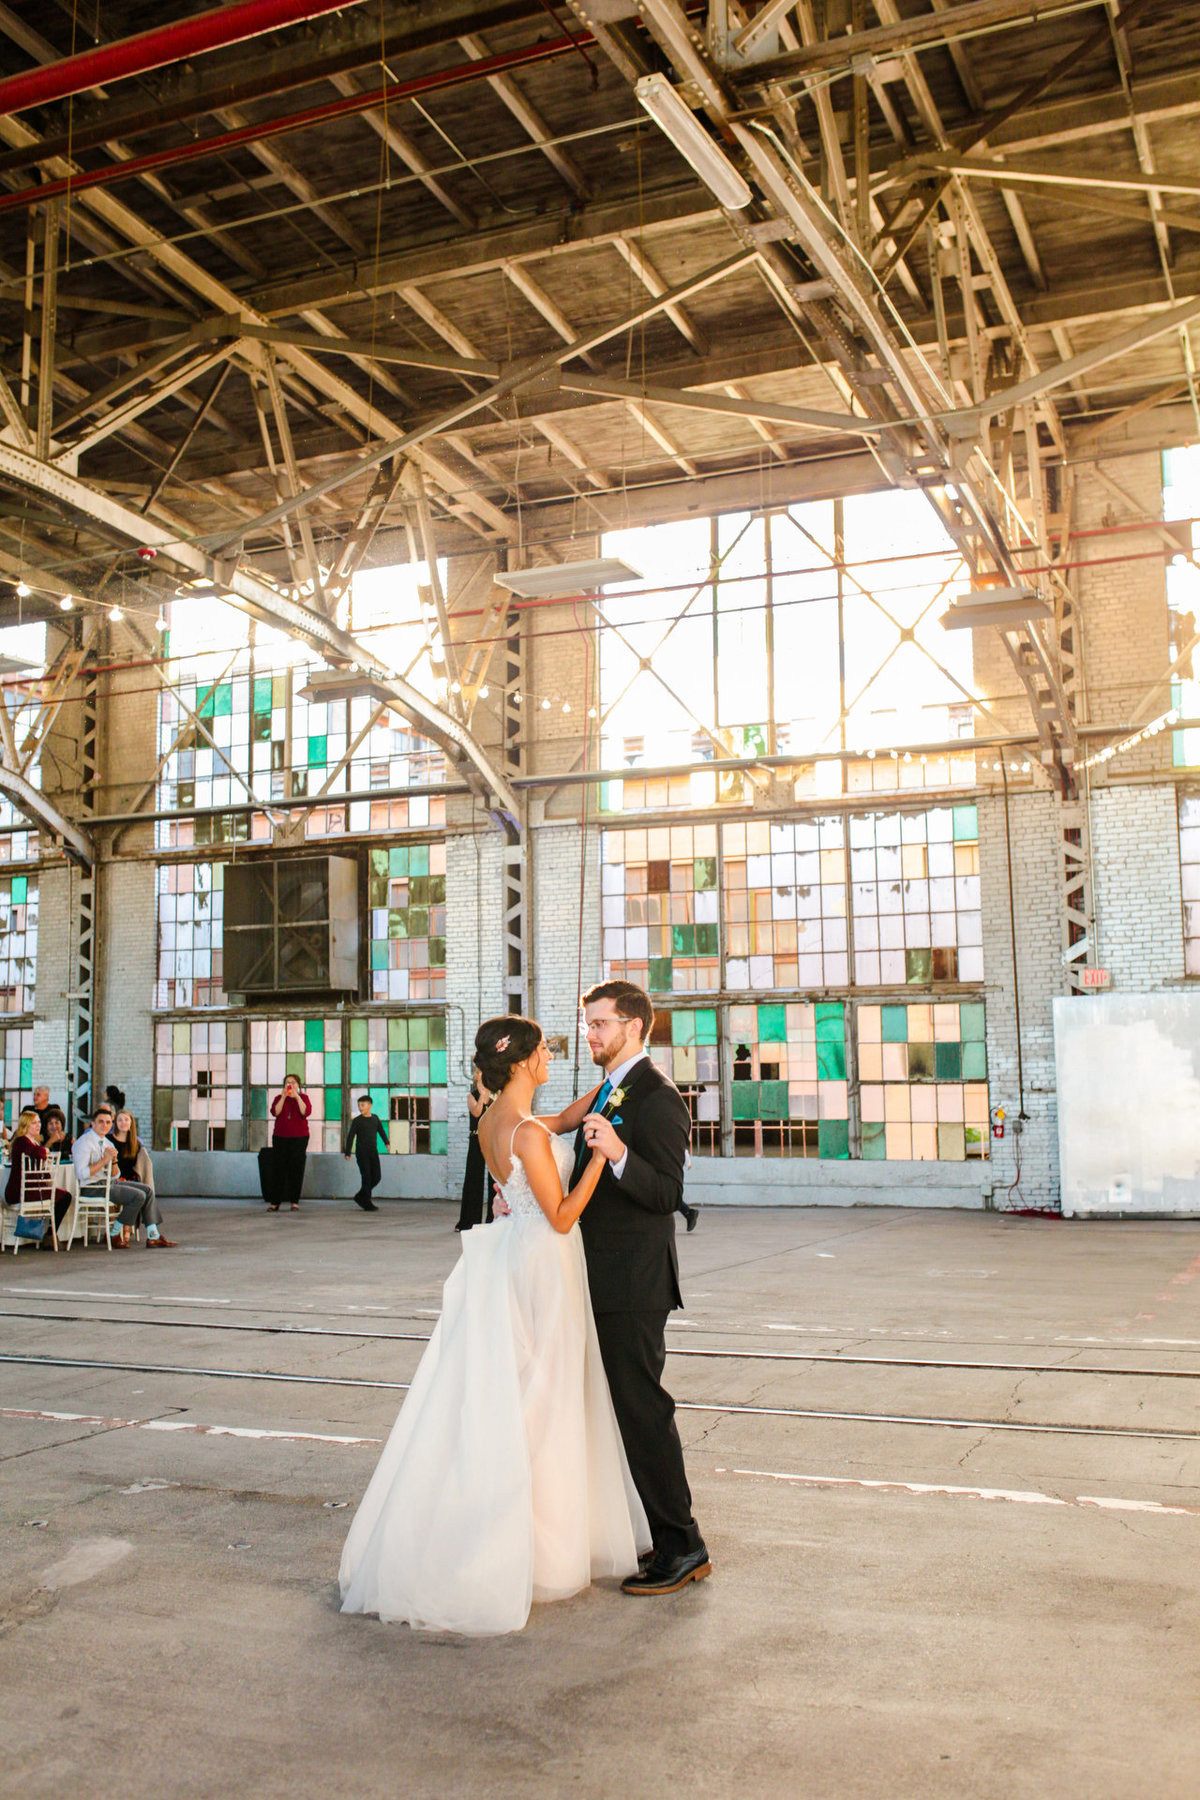 Albuquerque Wedding Photographer_Abq Rail Yards Reception_www.tylerbrooke.com_041